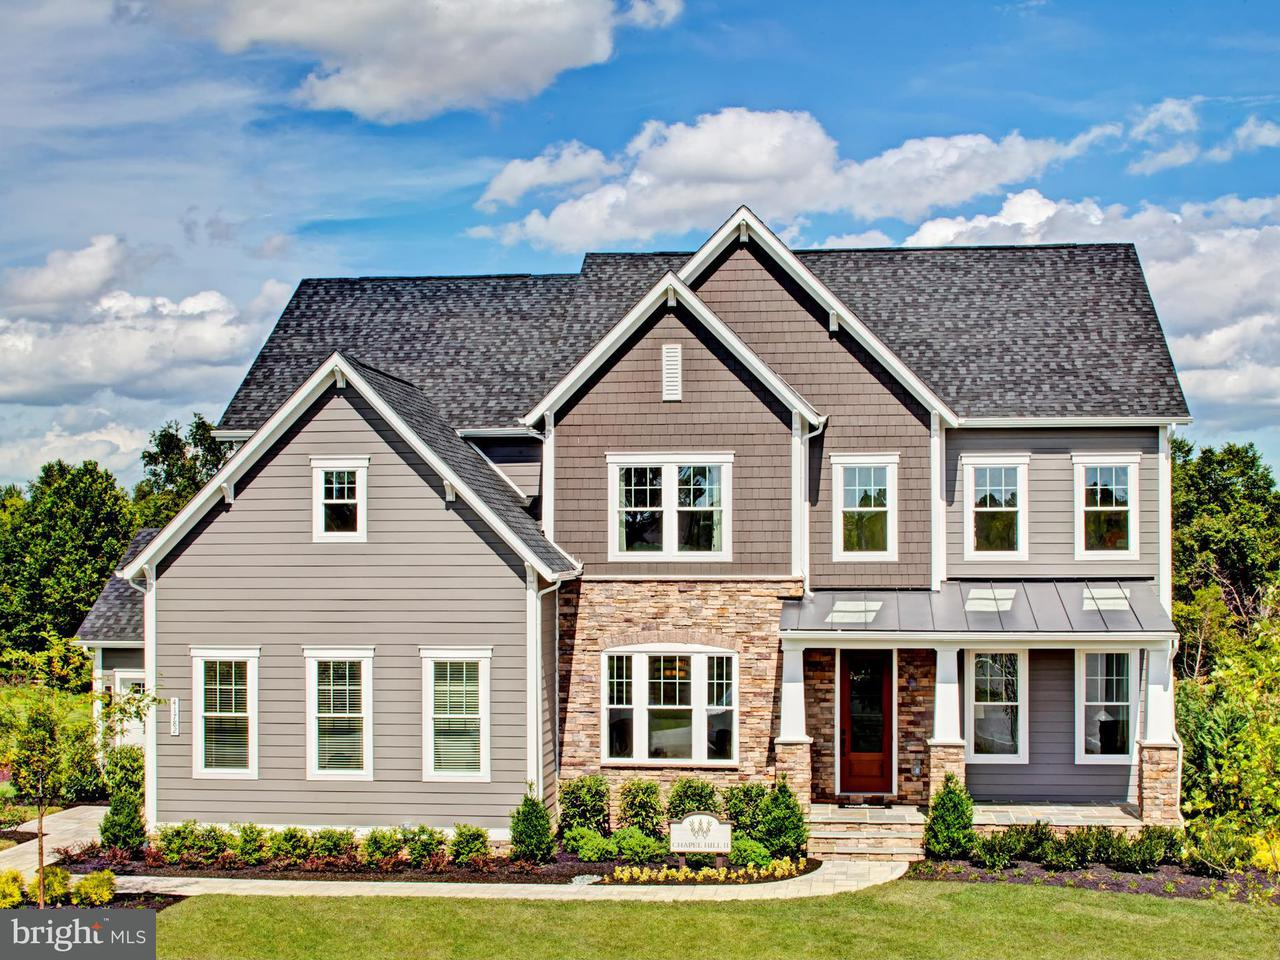 Single Family Home for Sale at AMESFIELD Place AMESFIELD Place Aldie, Virginia 20105 United States